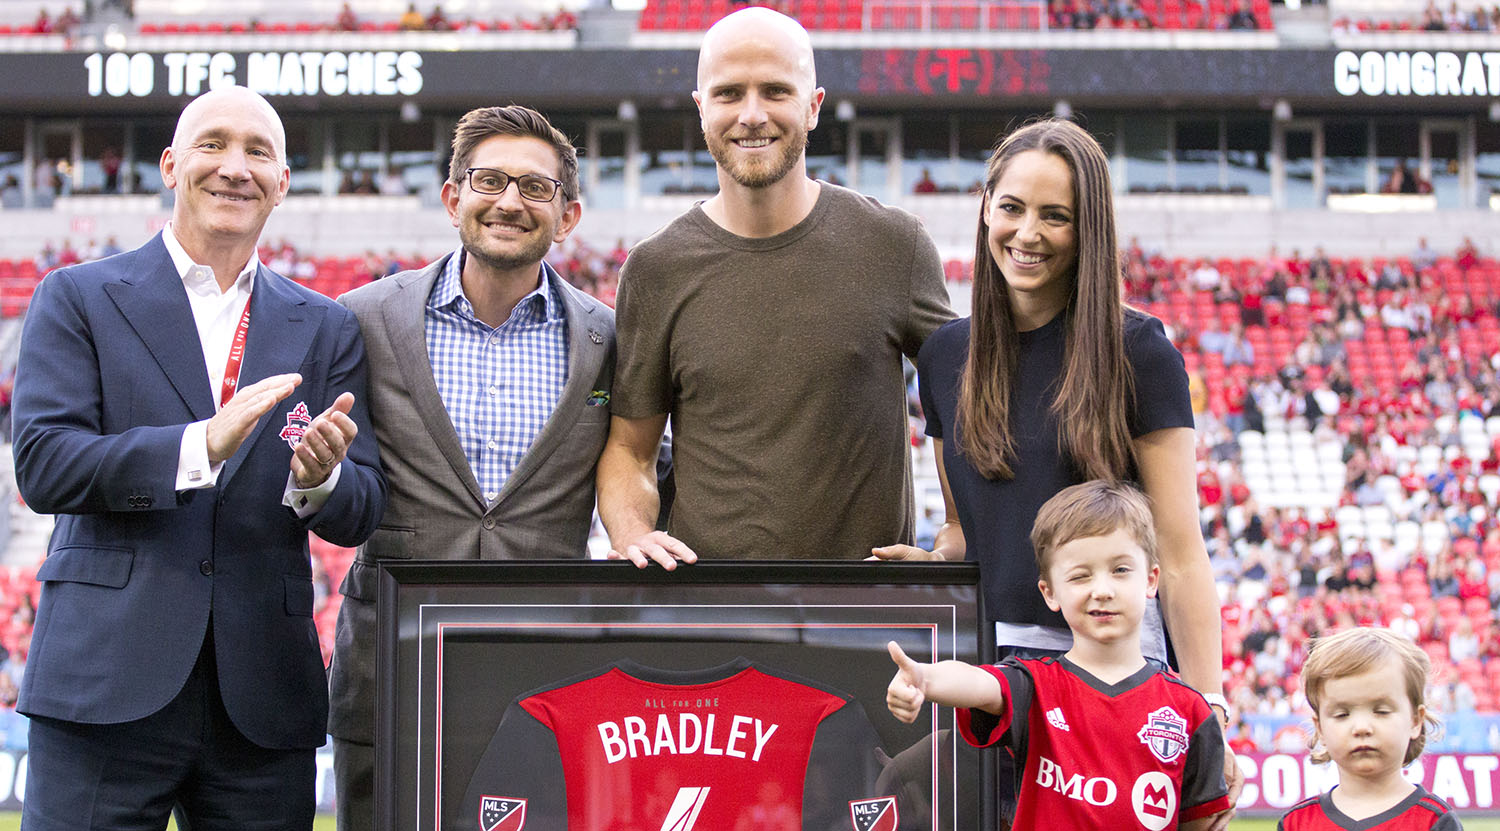 Bill Manning , Tim Bezbatchenko, Michael Bradley, and his wife Amanda Barletta pose with a commemorative jersey for Michael Bradley's 100th match with Toronto FC. Image by Dennis Marciniak of denMAR Media.